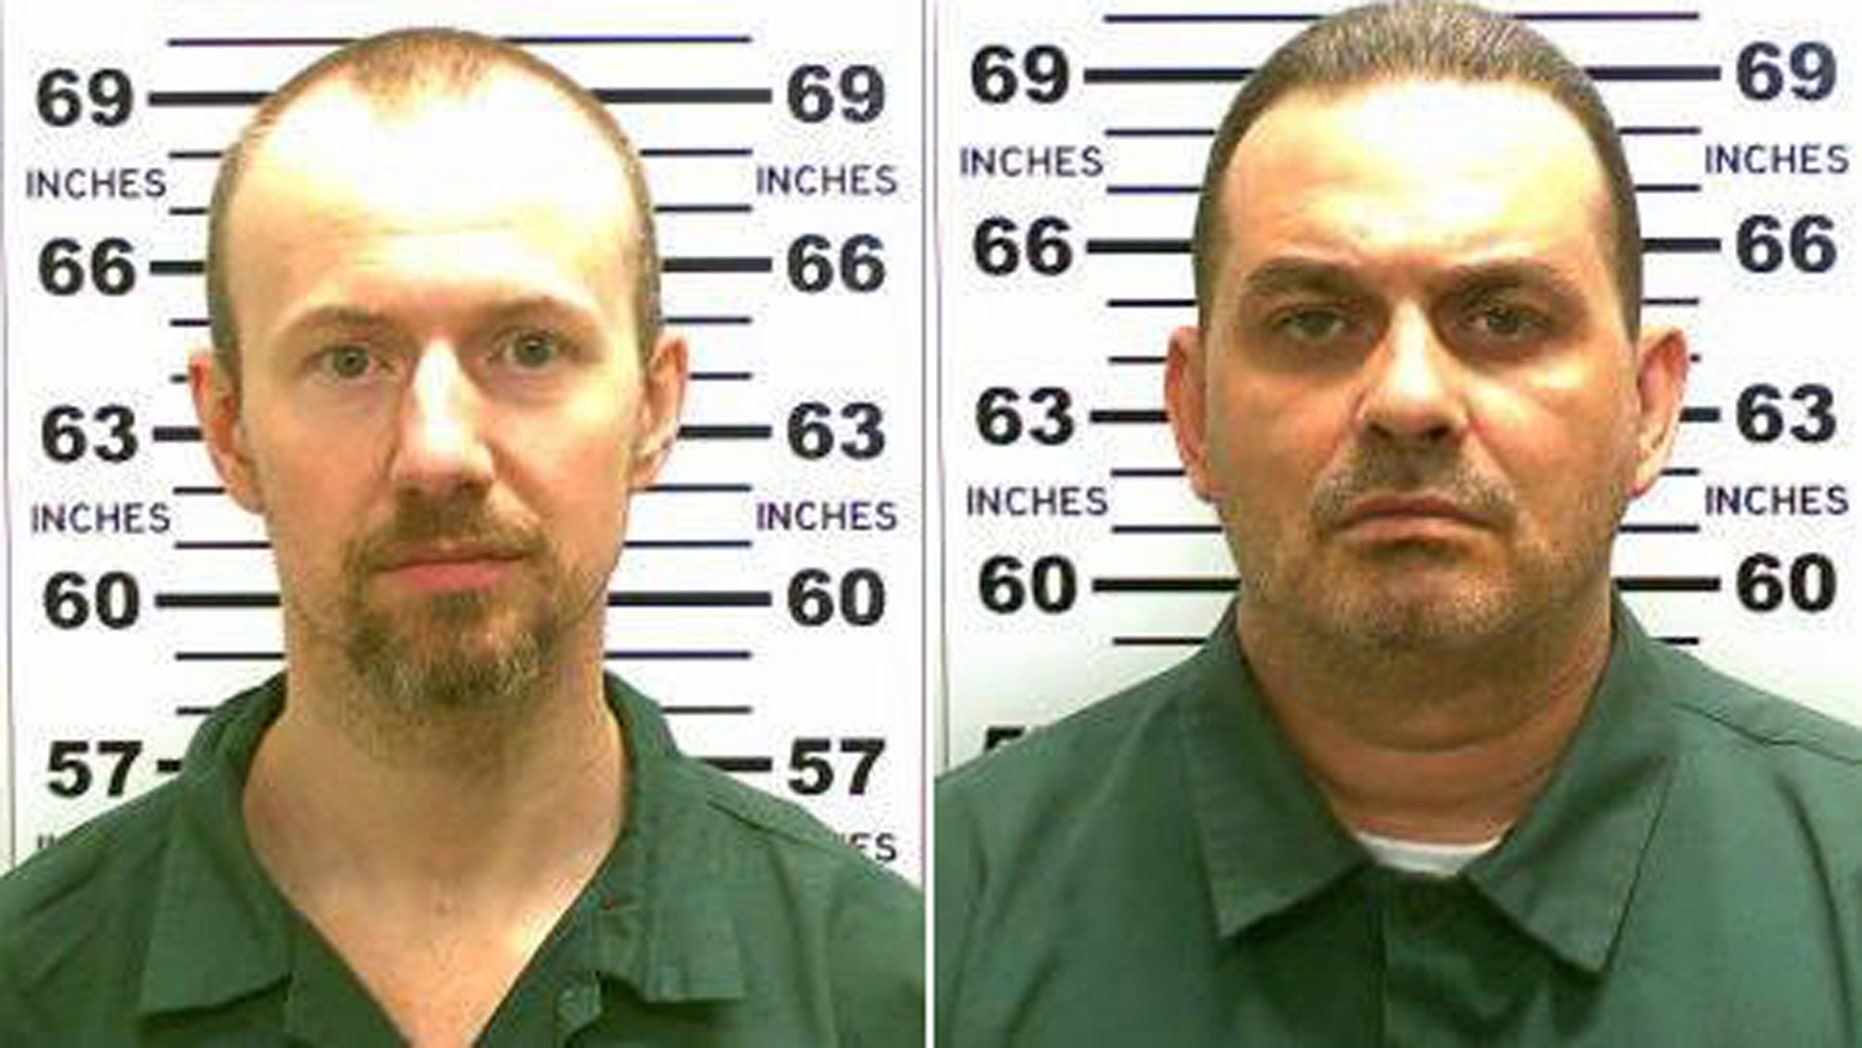 These images show David Sweat and Richard Matt, who escaped from the maximum-security Clinton Correctional Facility at Dannemora last year.